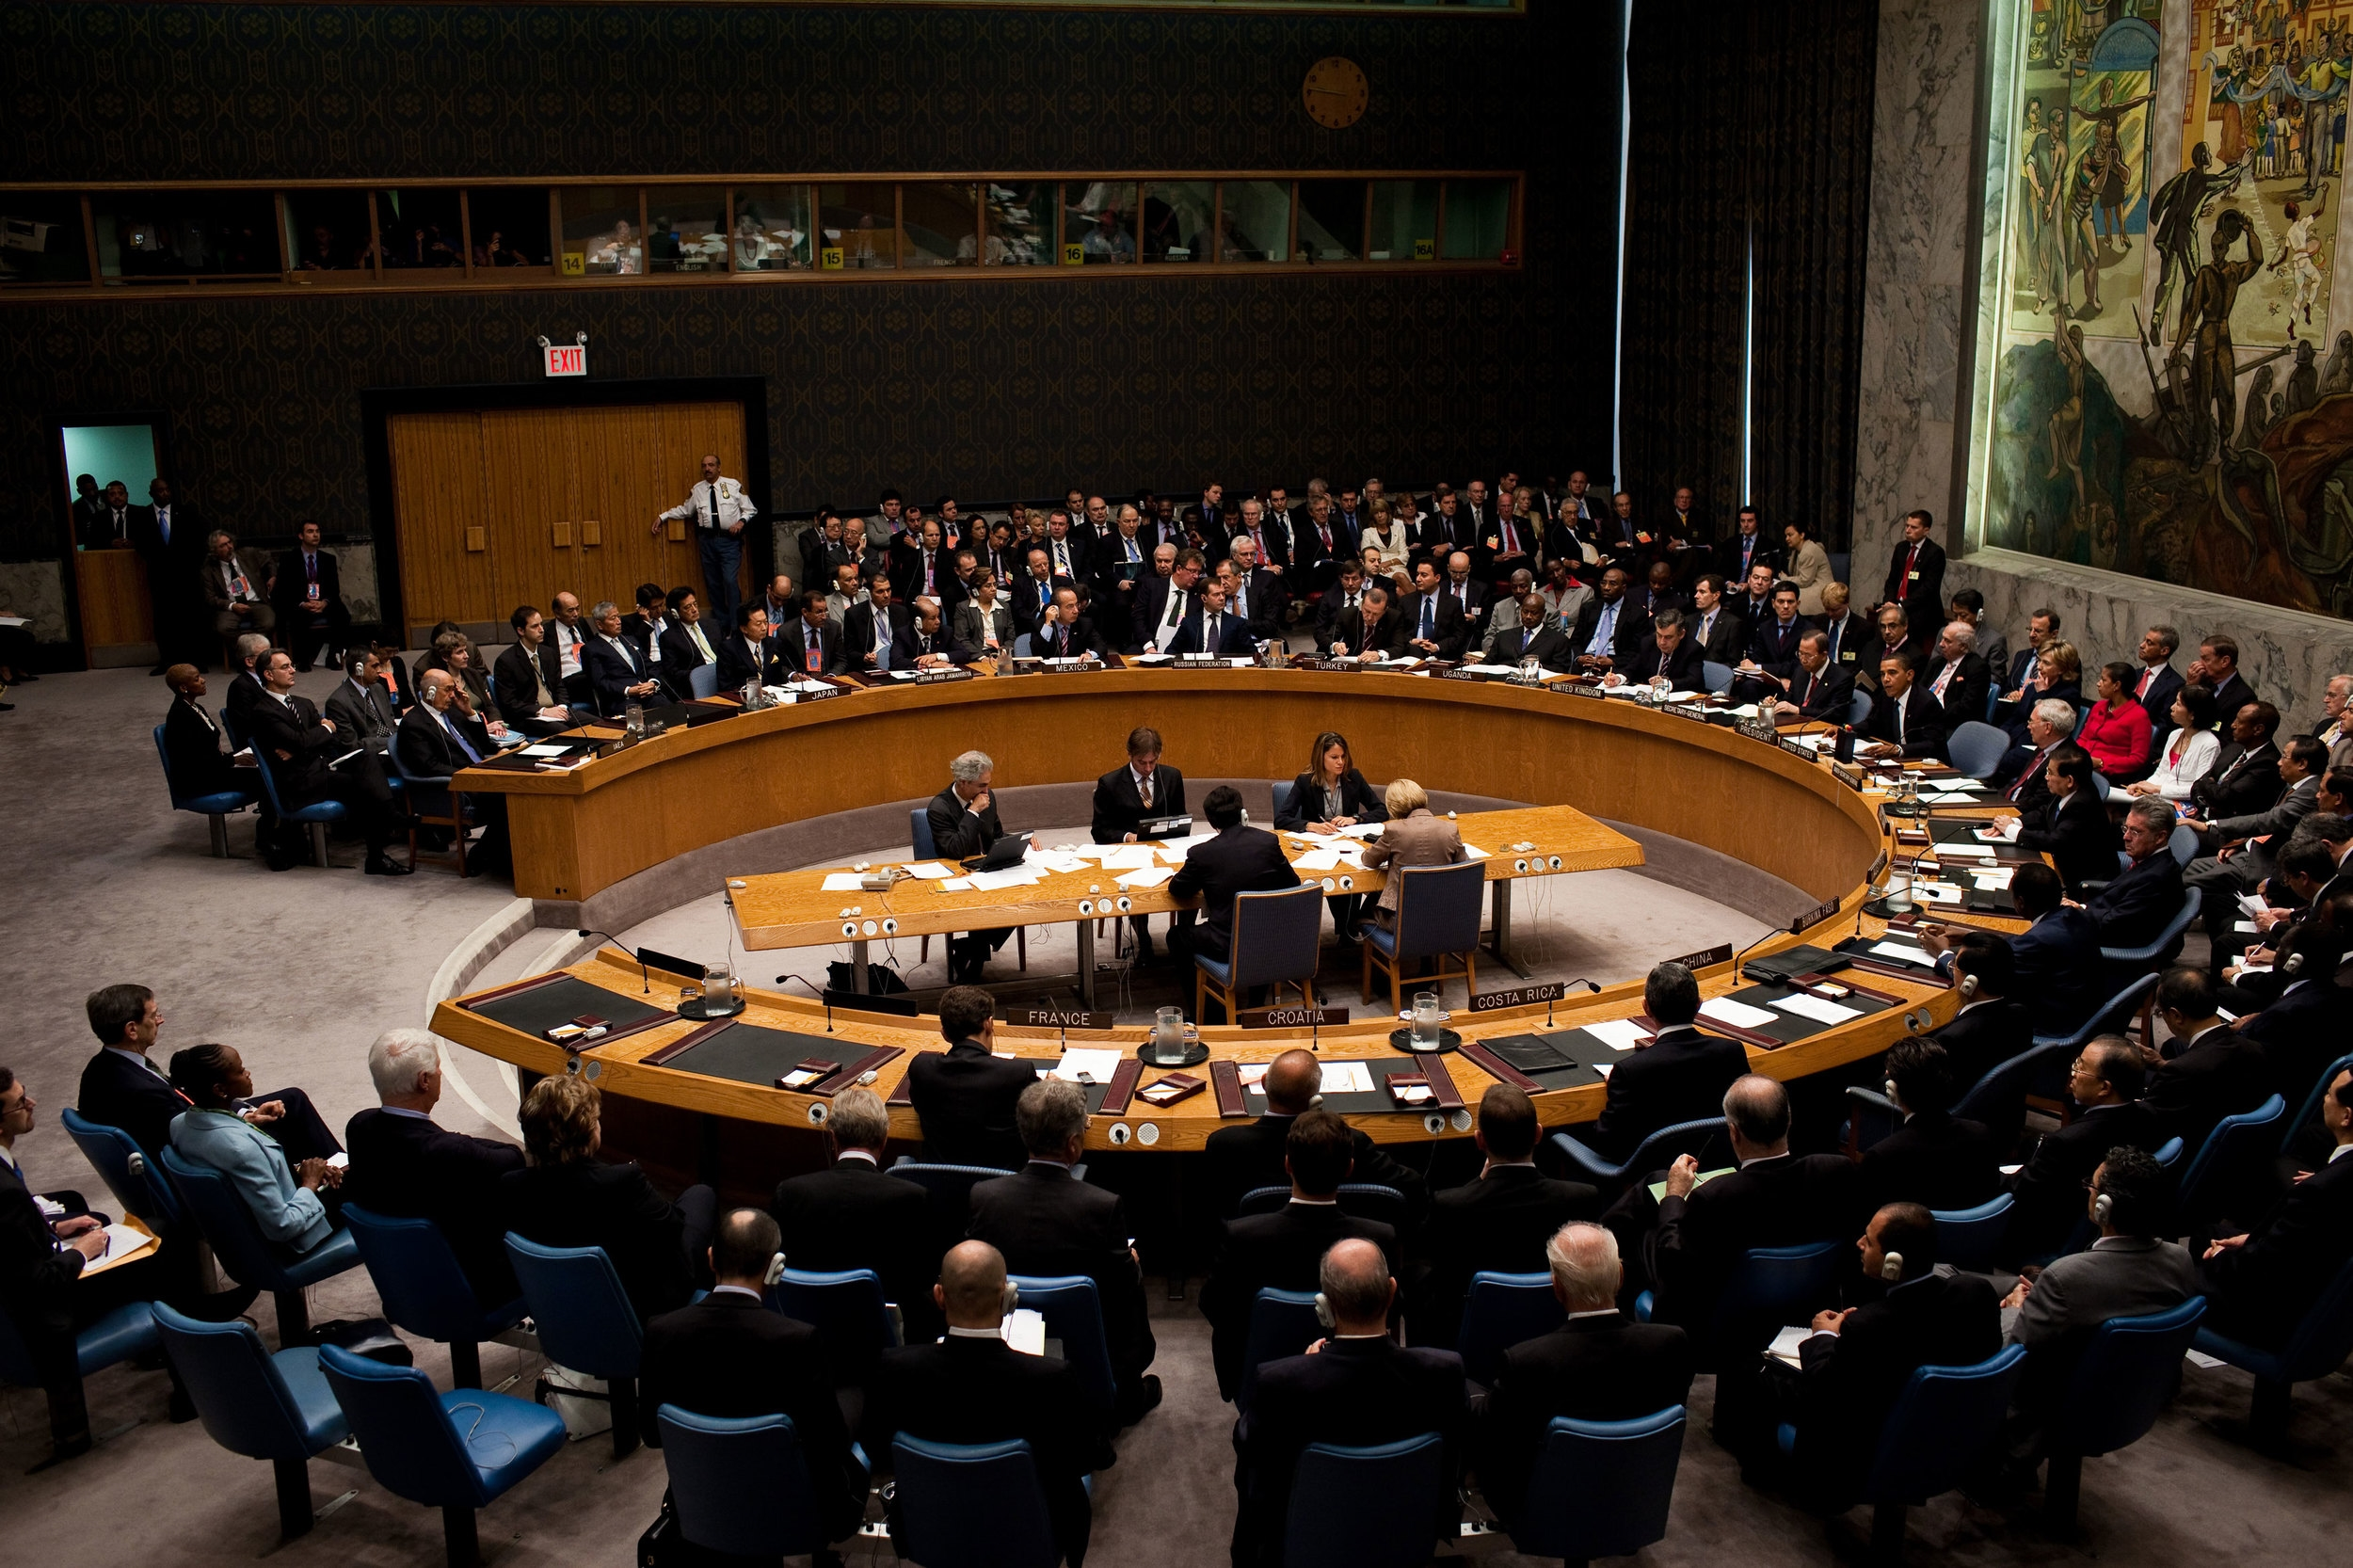 The five permanent members of the U.N. Security Council can veto anything. If any two disagree on, say, Syria, the Council is paralyzed.